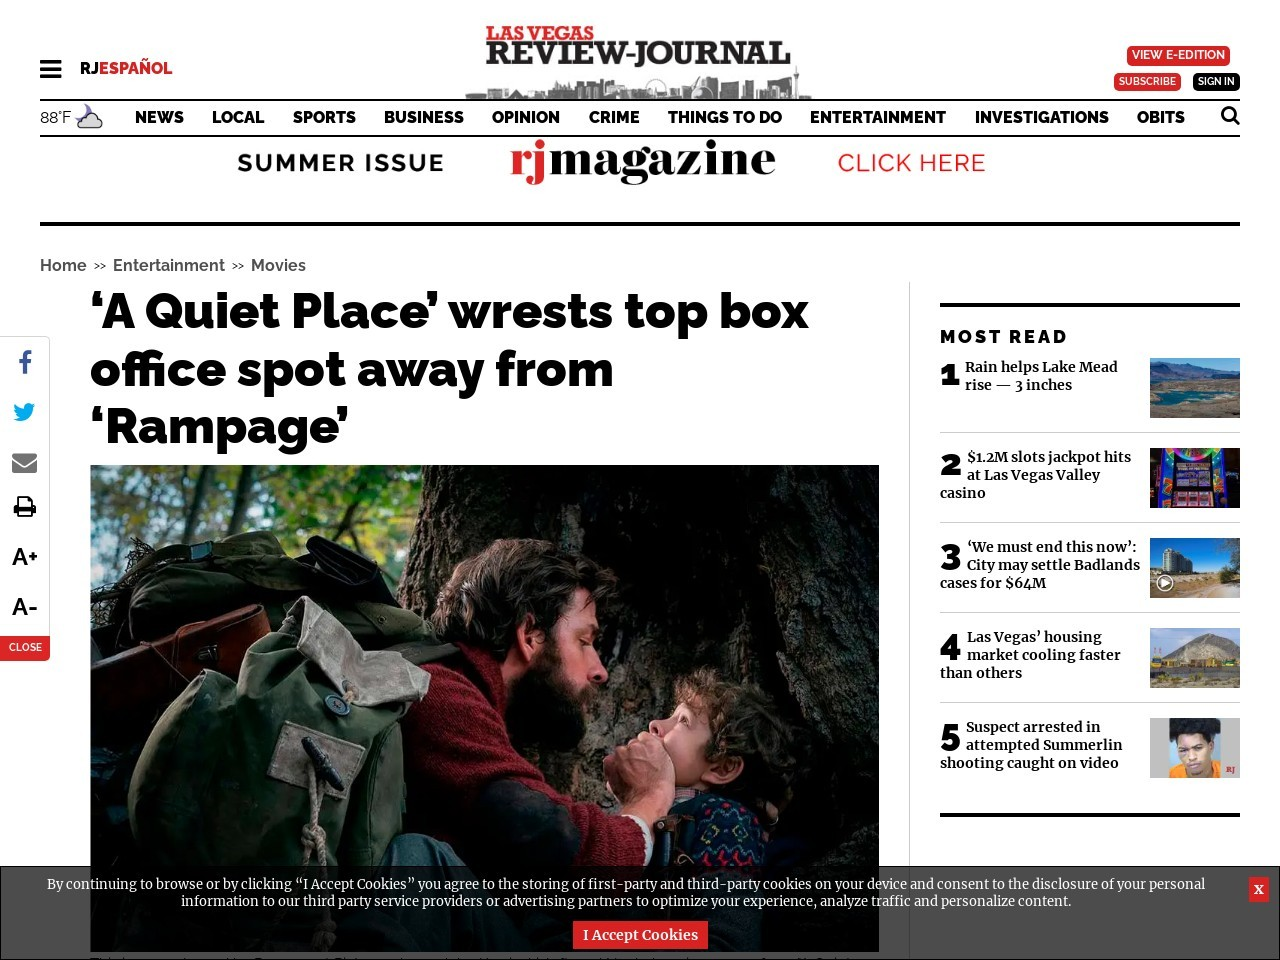 'A Quiet Place' wrests top box office spot away from 'Rampage'